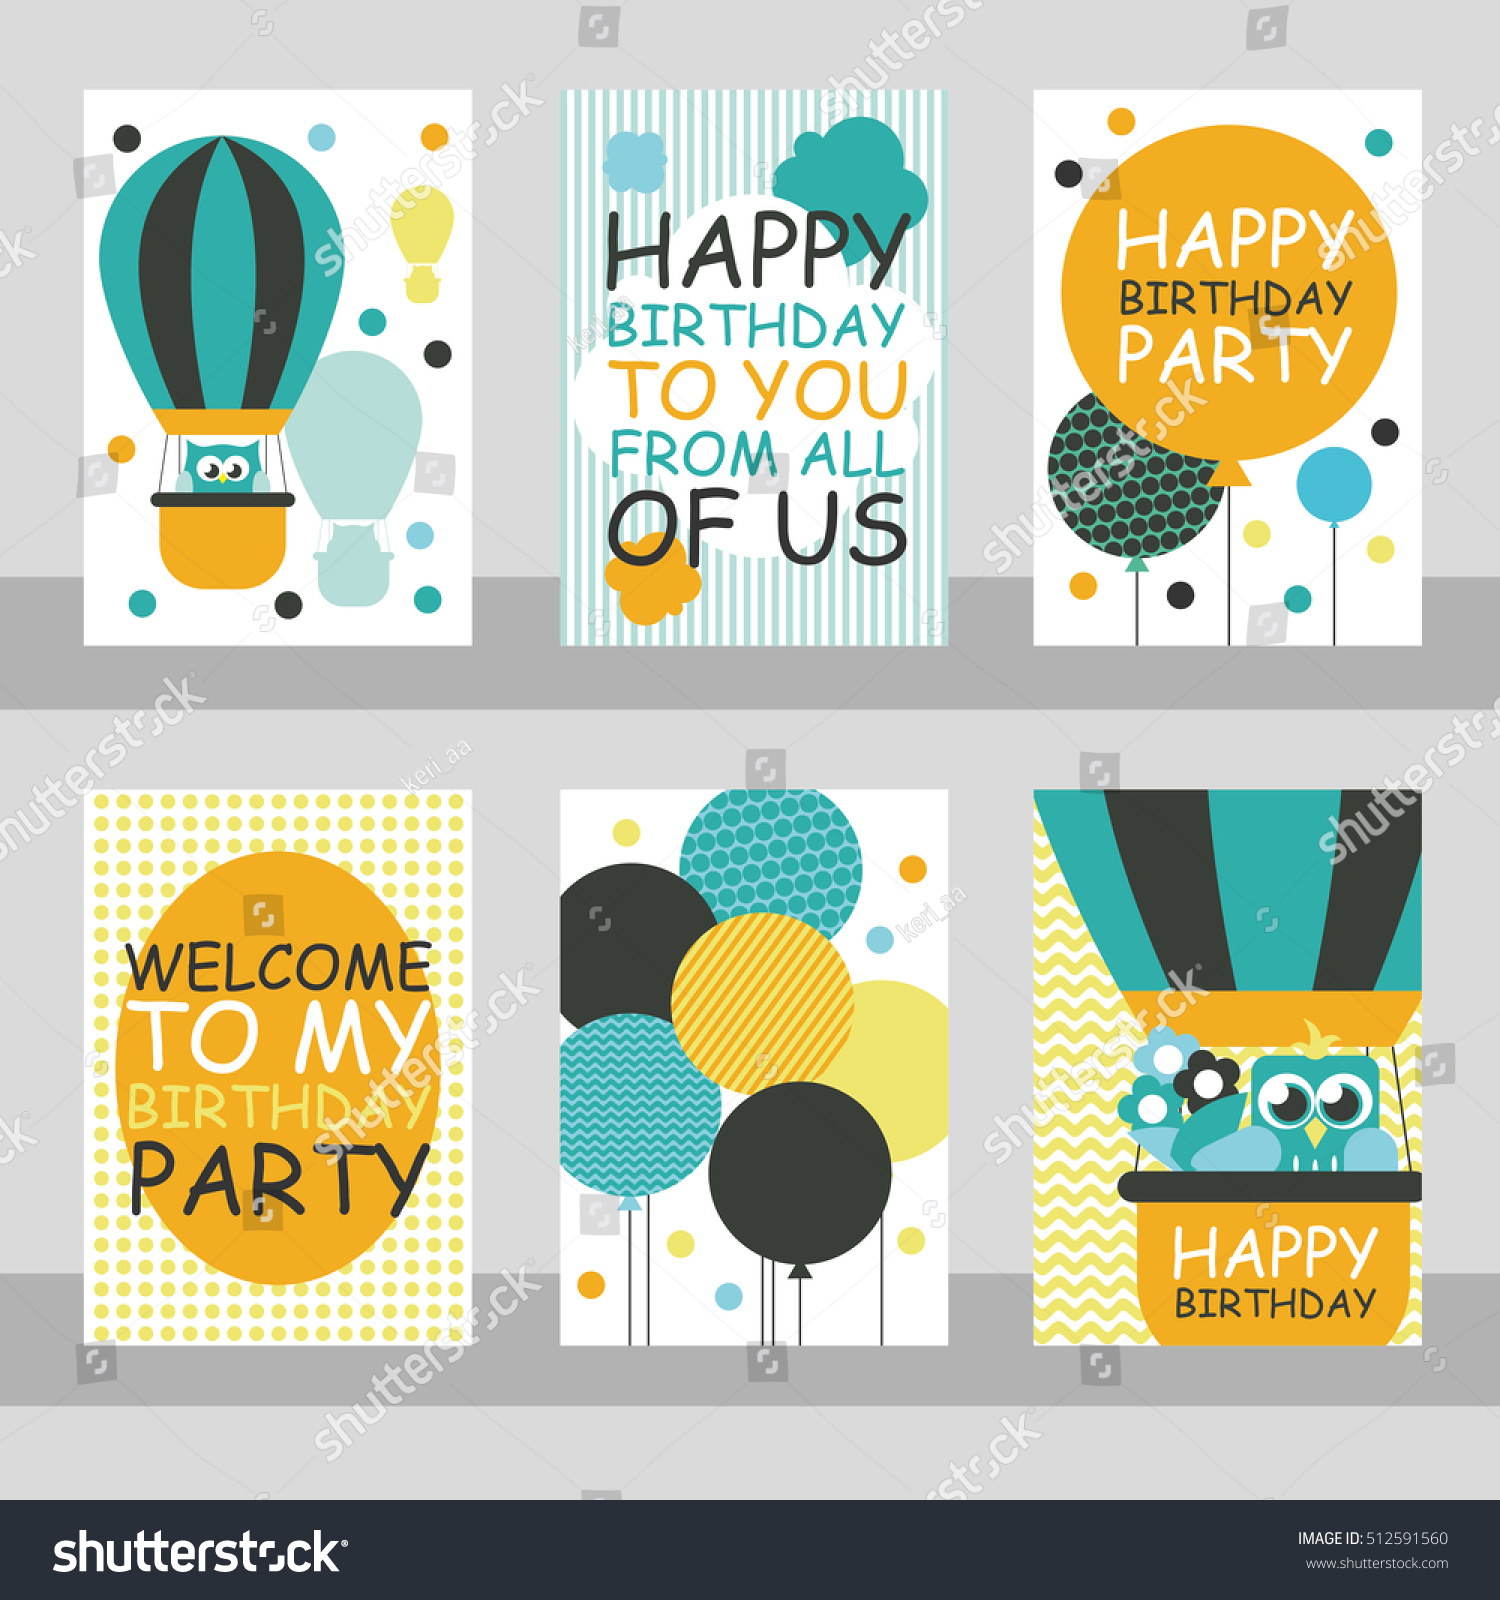 6 Birthday Card Templates: Set 6 Cute Creative Cards Templates Stock Vector 512591560